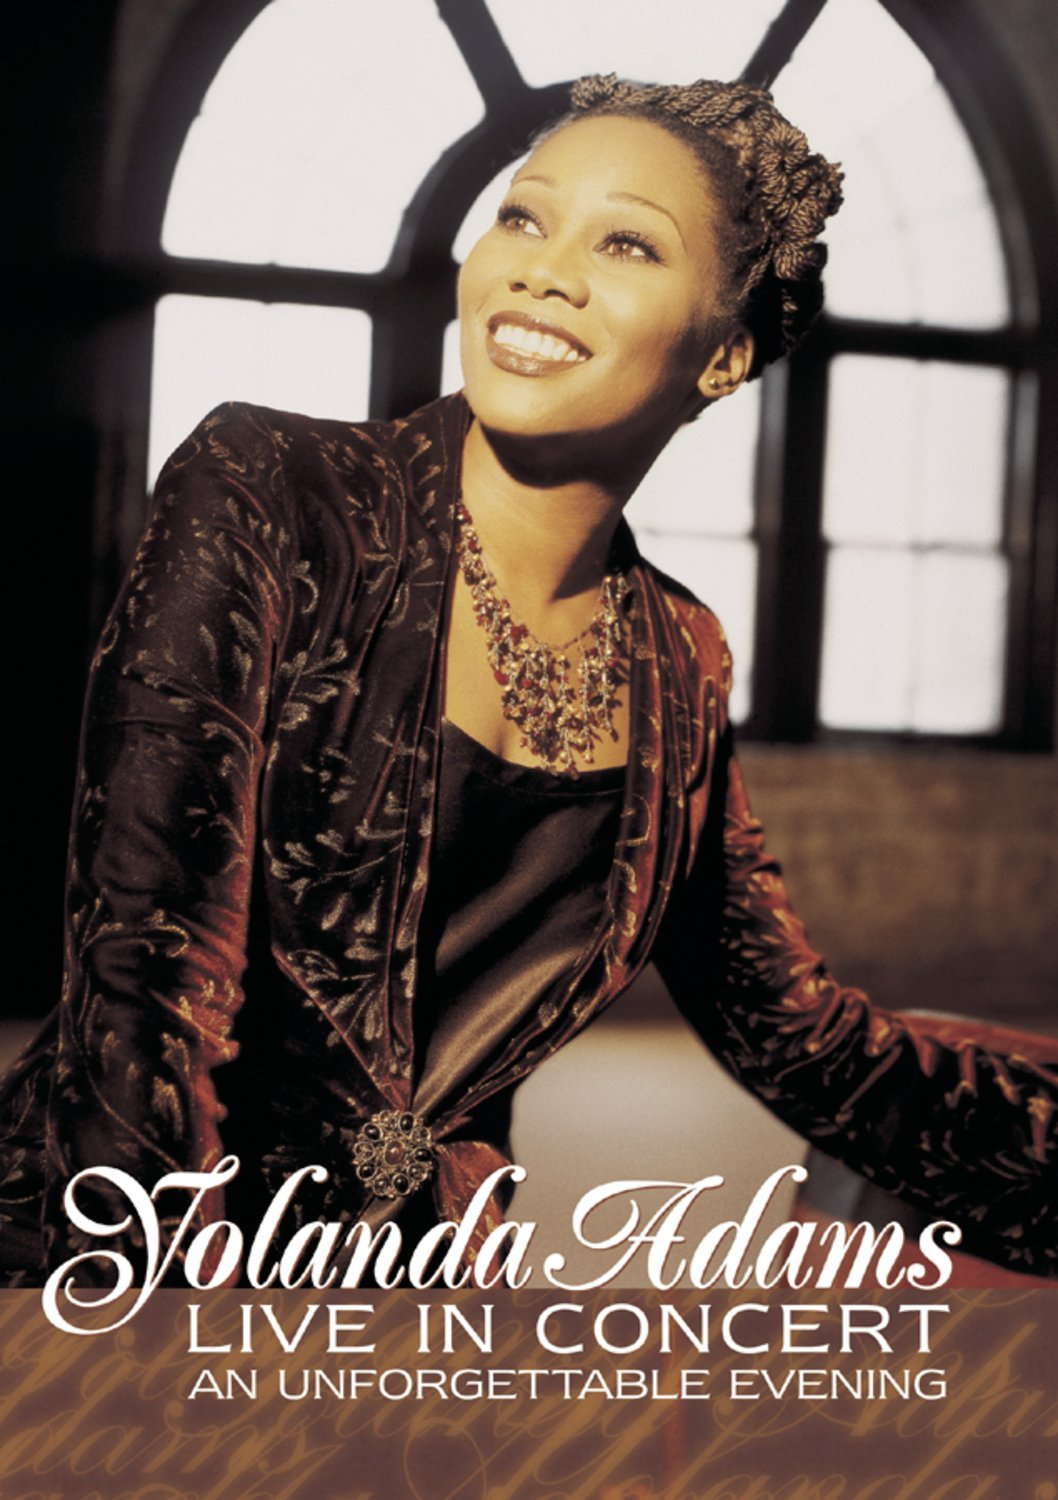 Yolanda Adams Live in Concert - An Unforgettable Evening by BMG VIDEO